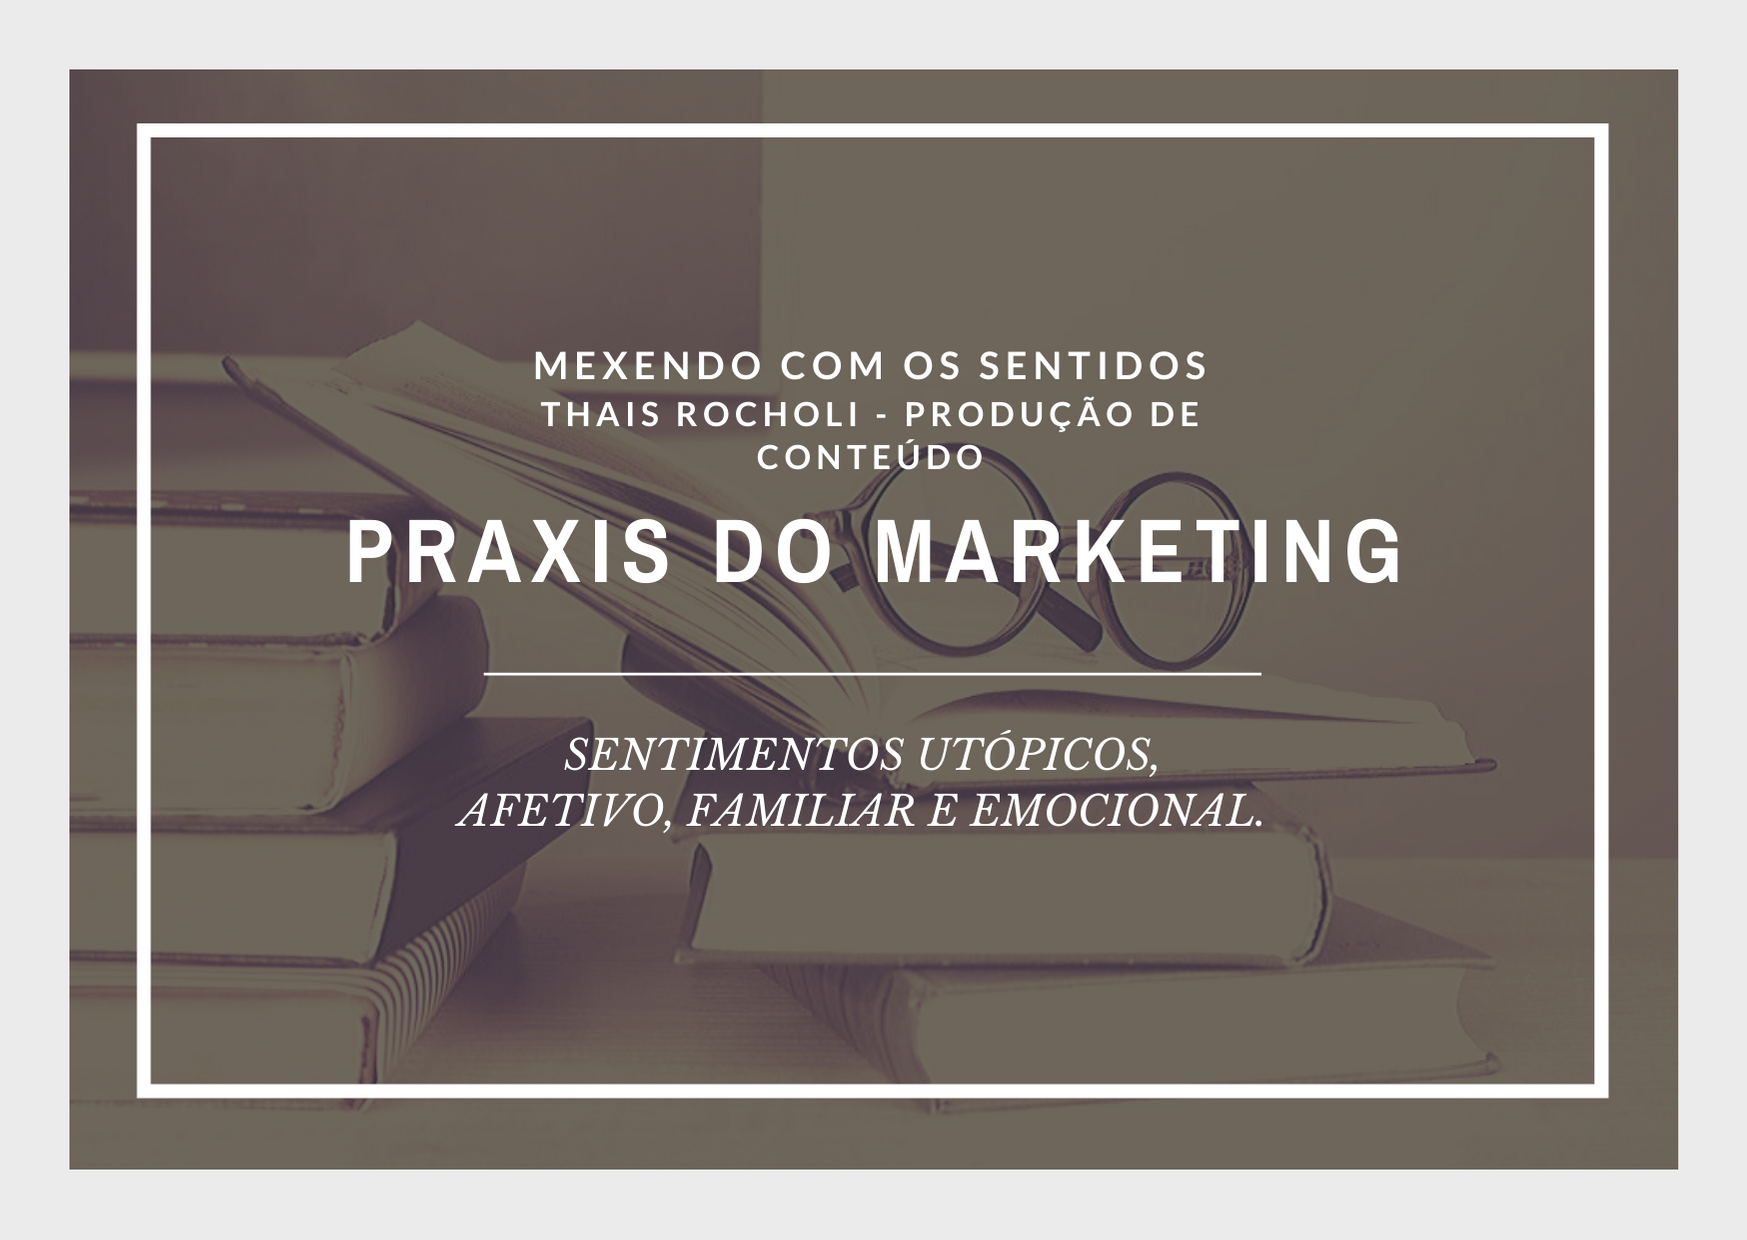 PRAXIS DO MARKETING.png